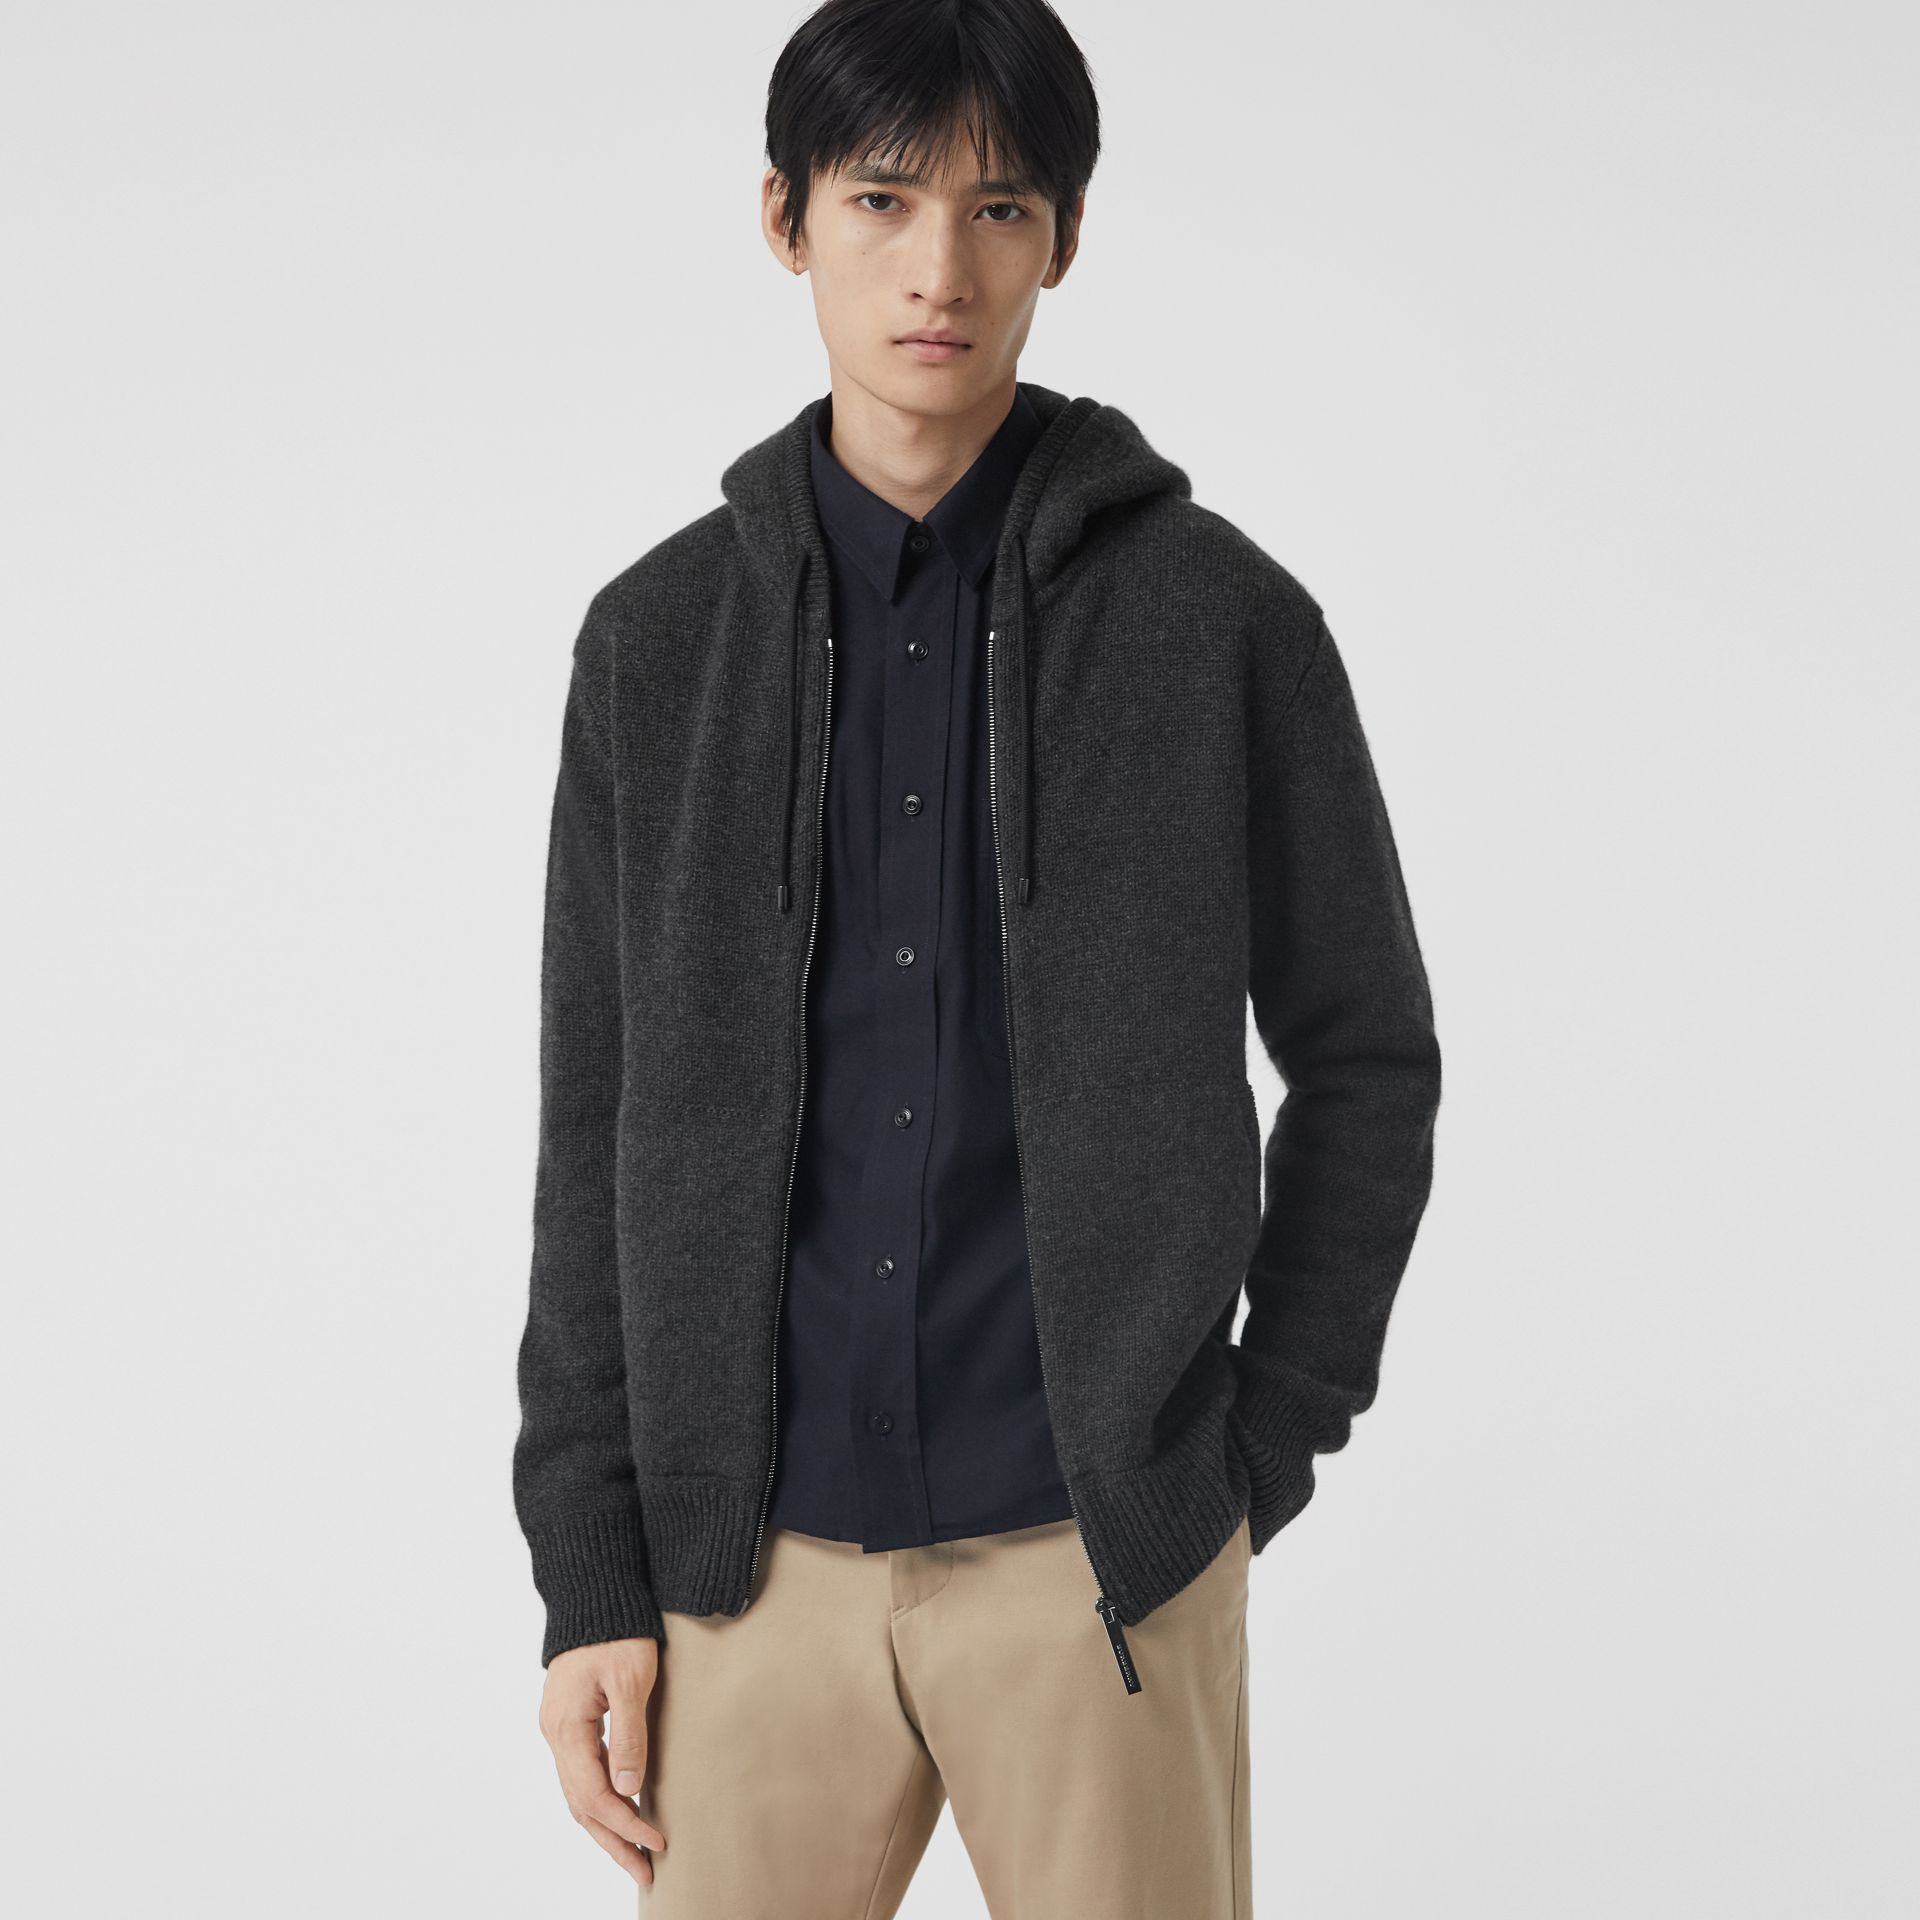 Cashmere Hooded Top in Charcoal Melange - Men | Burberry Canada - gallery image 0